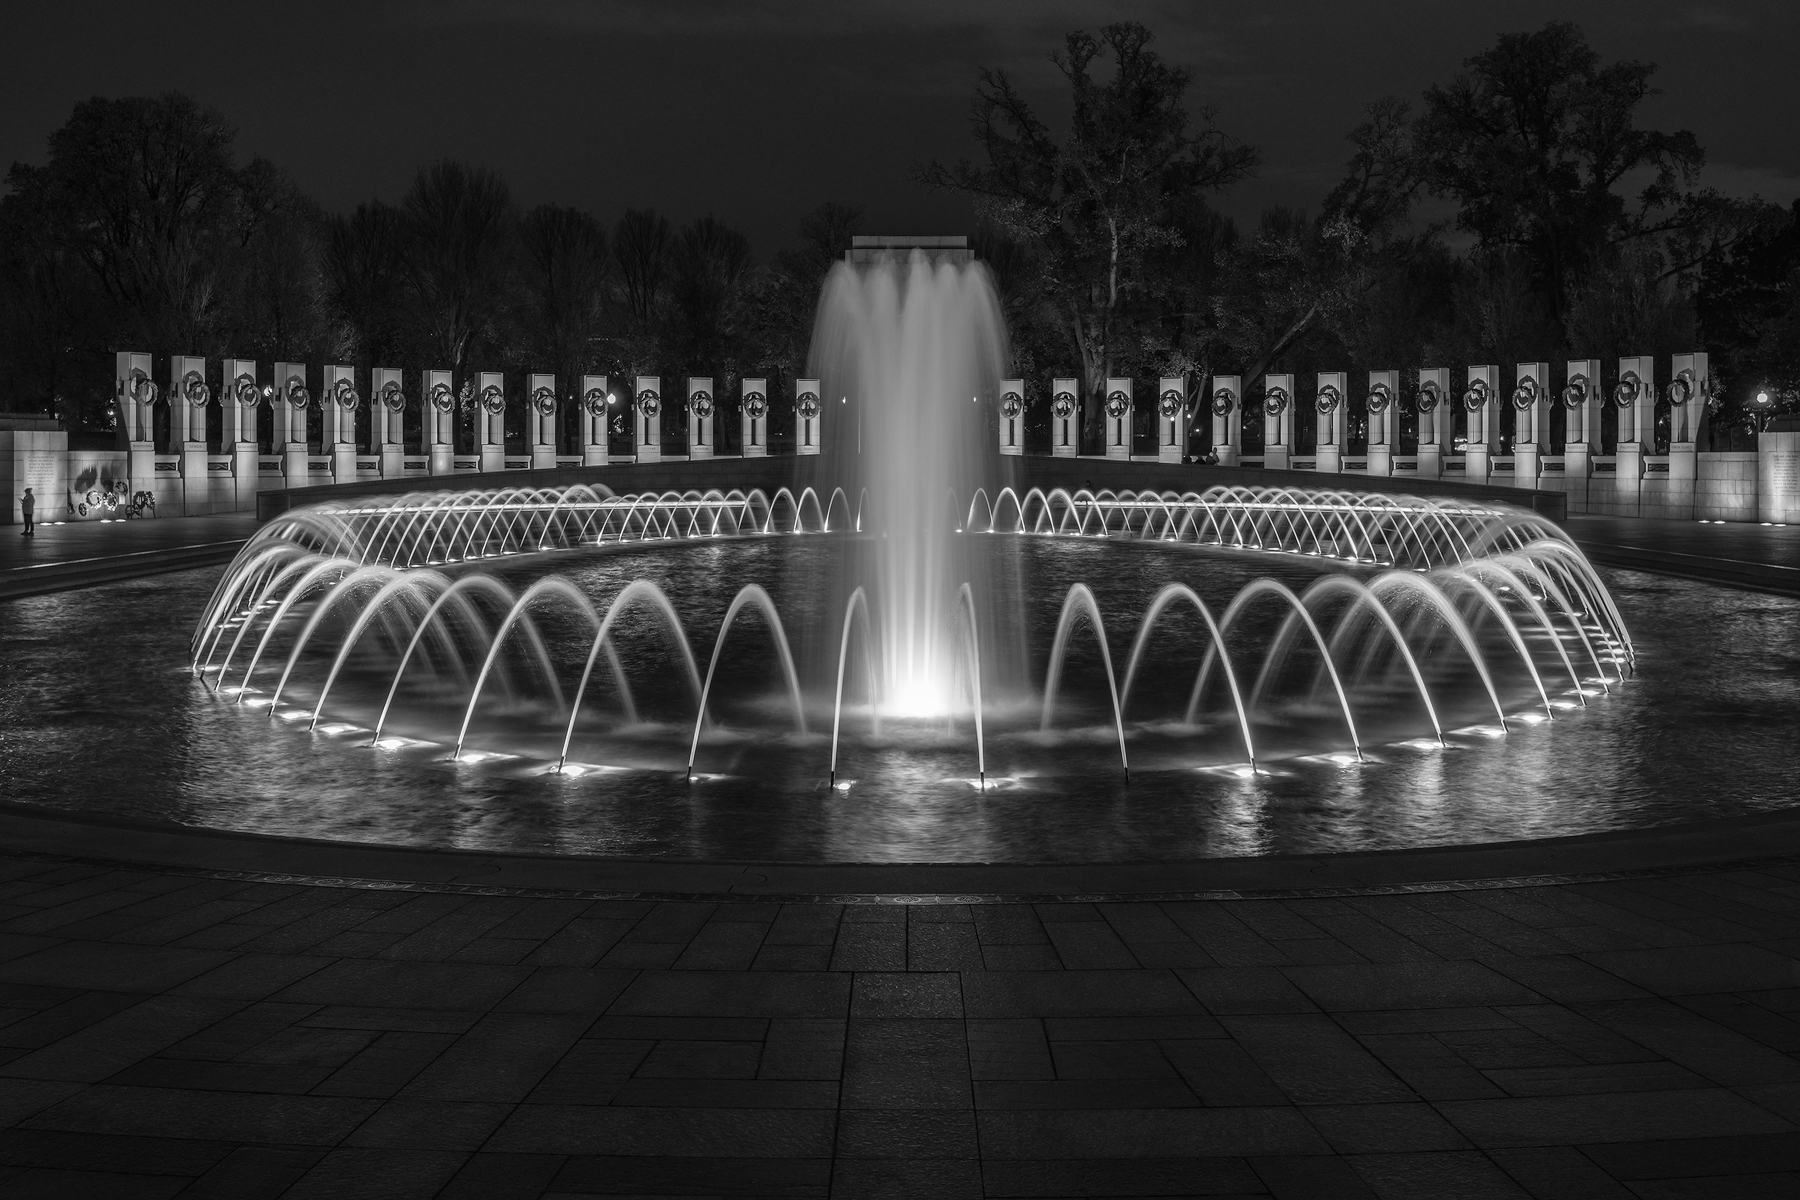 World War II Memorial • National Mall, Washington, DC. Fuji X-T2 and a Fujinon XF10-24mm f4 at 12mm. Image exposed at ISO 200 at f5.6 for 4 seconds.